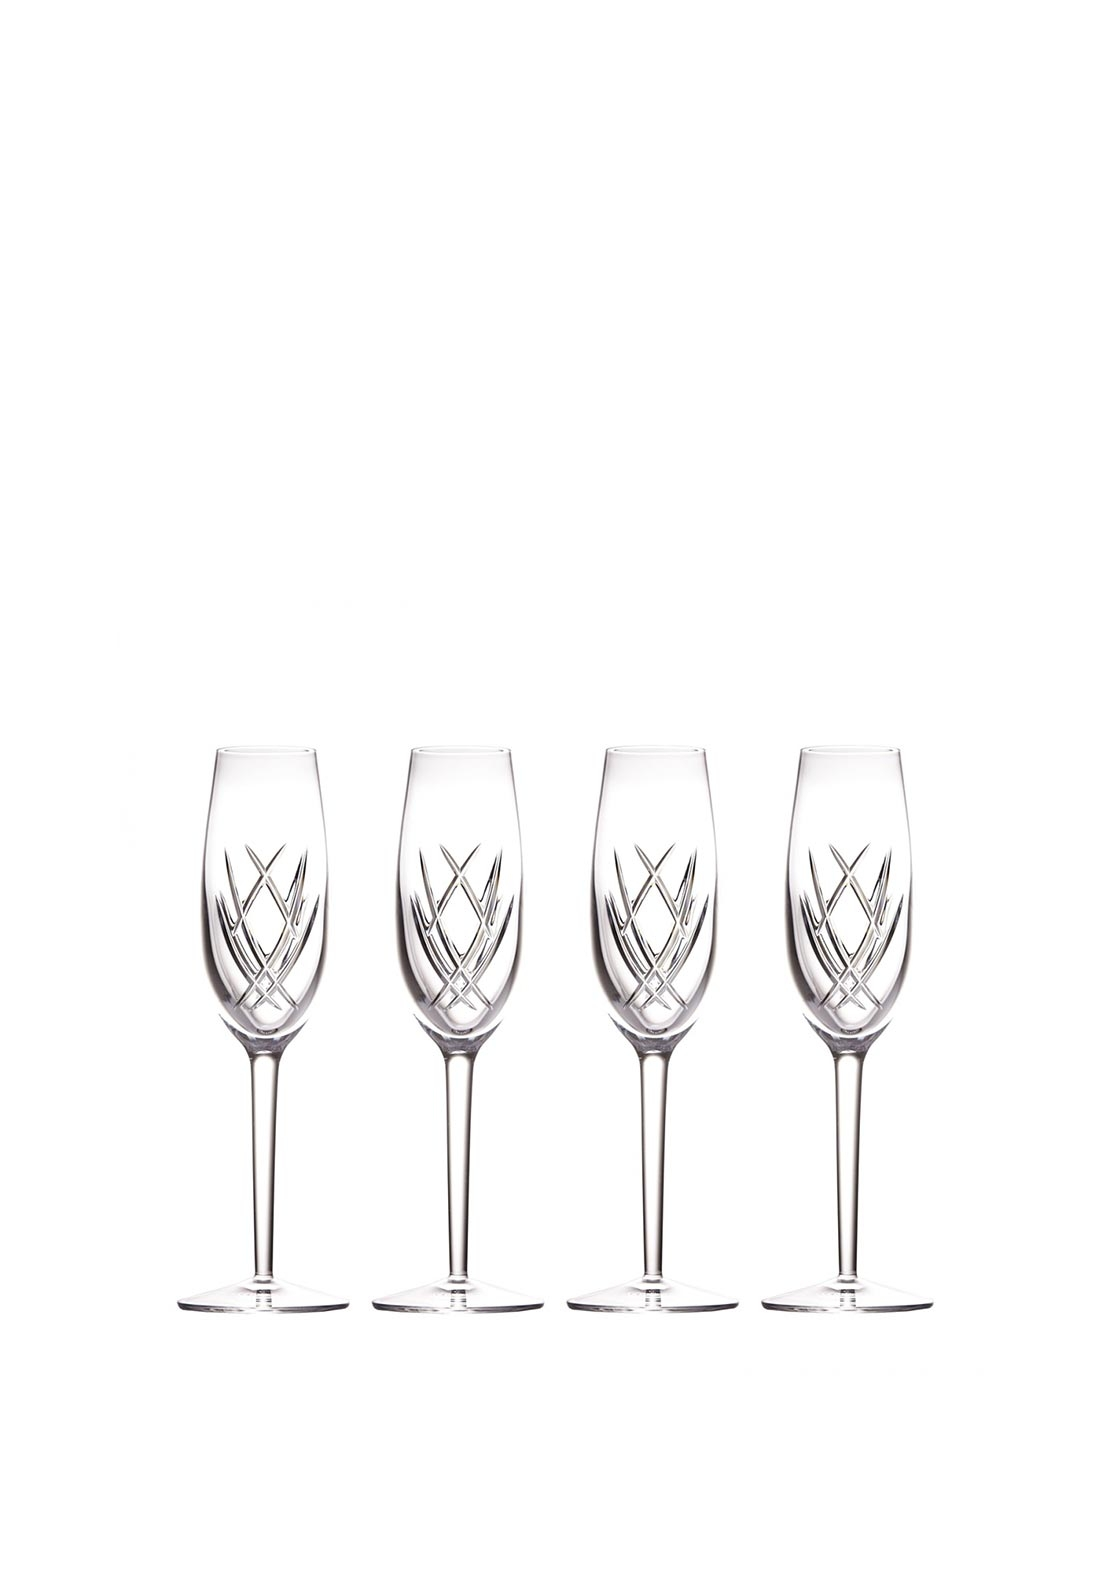 Waterford Crystal John Rocha Seda Set of 4 Flute Glasses